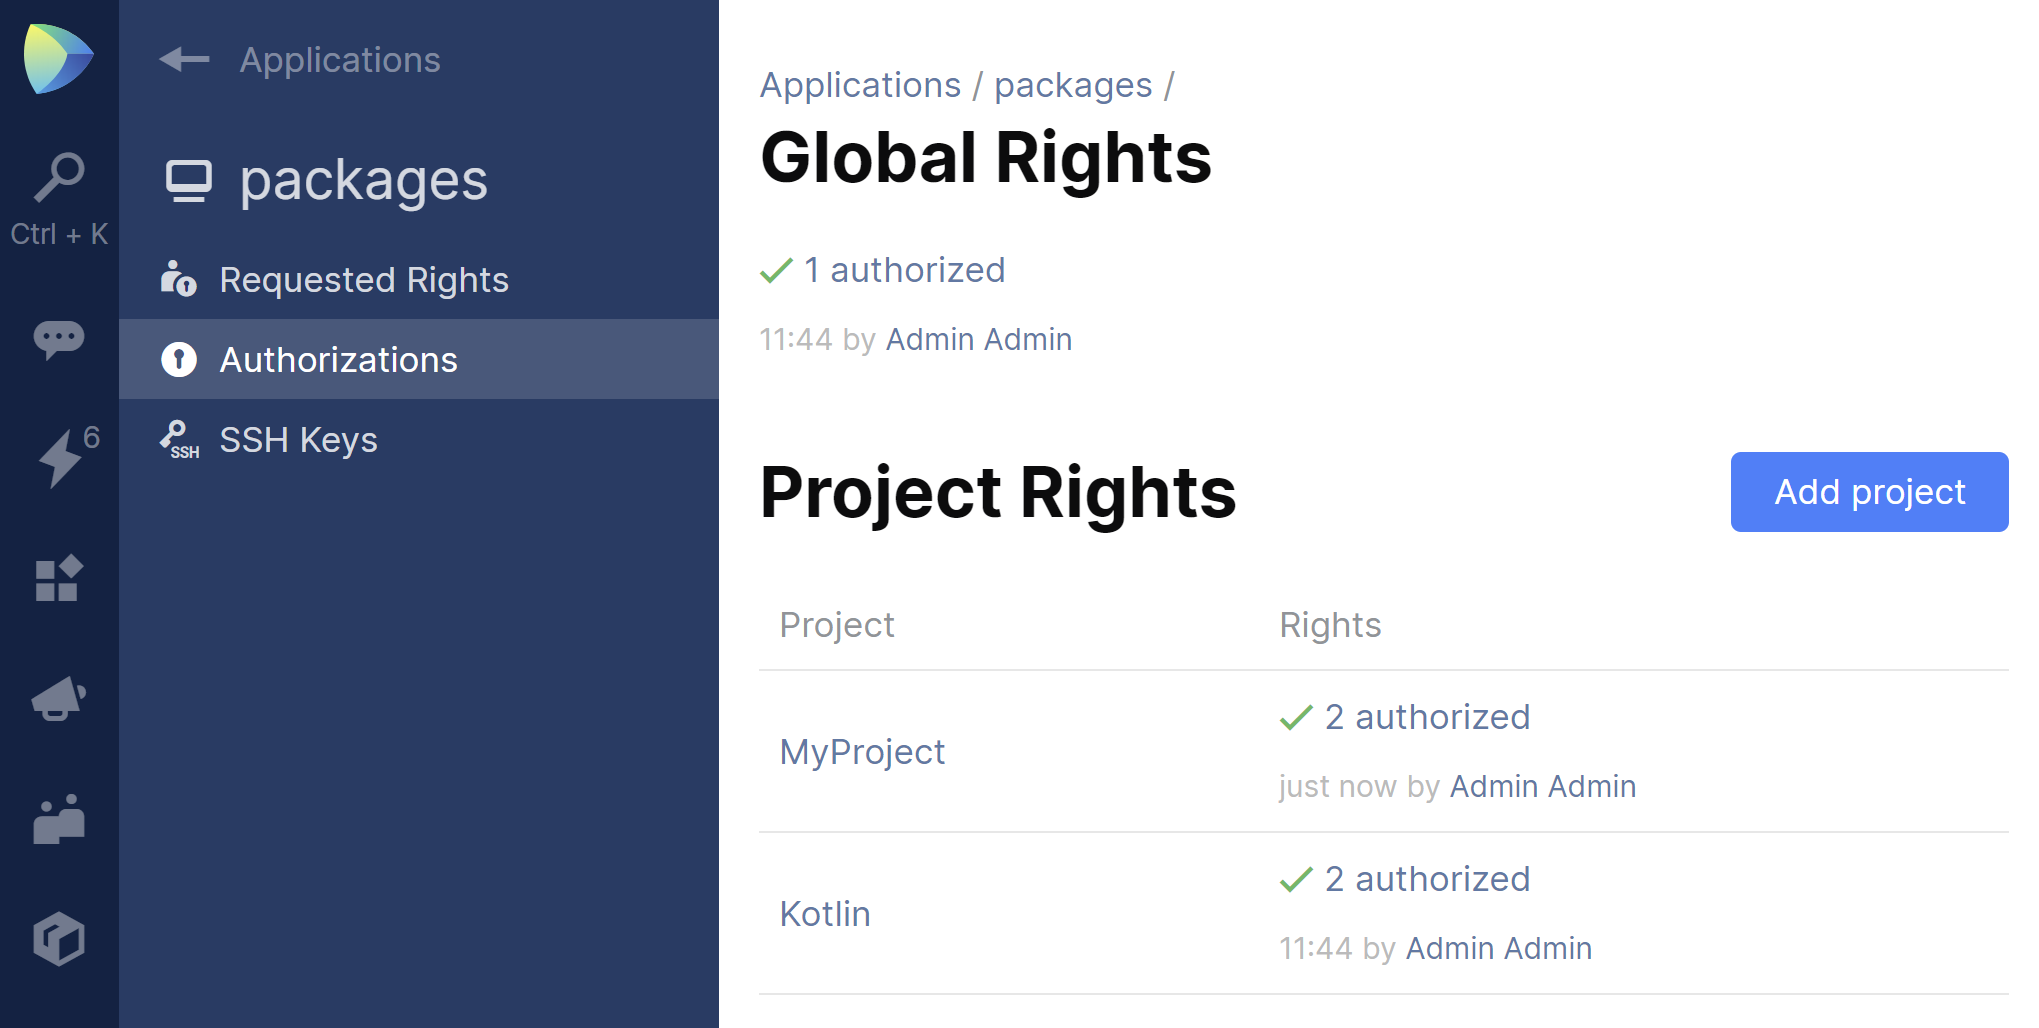 JetBrains Space. Project rights